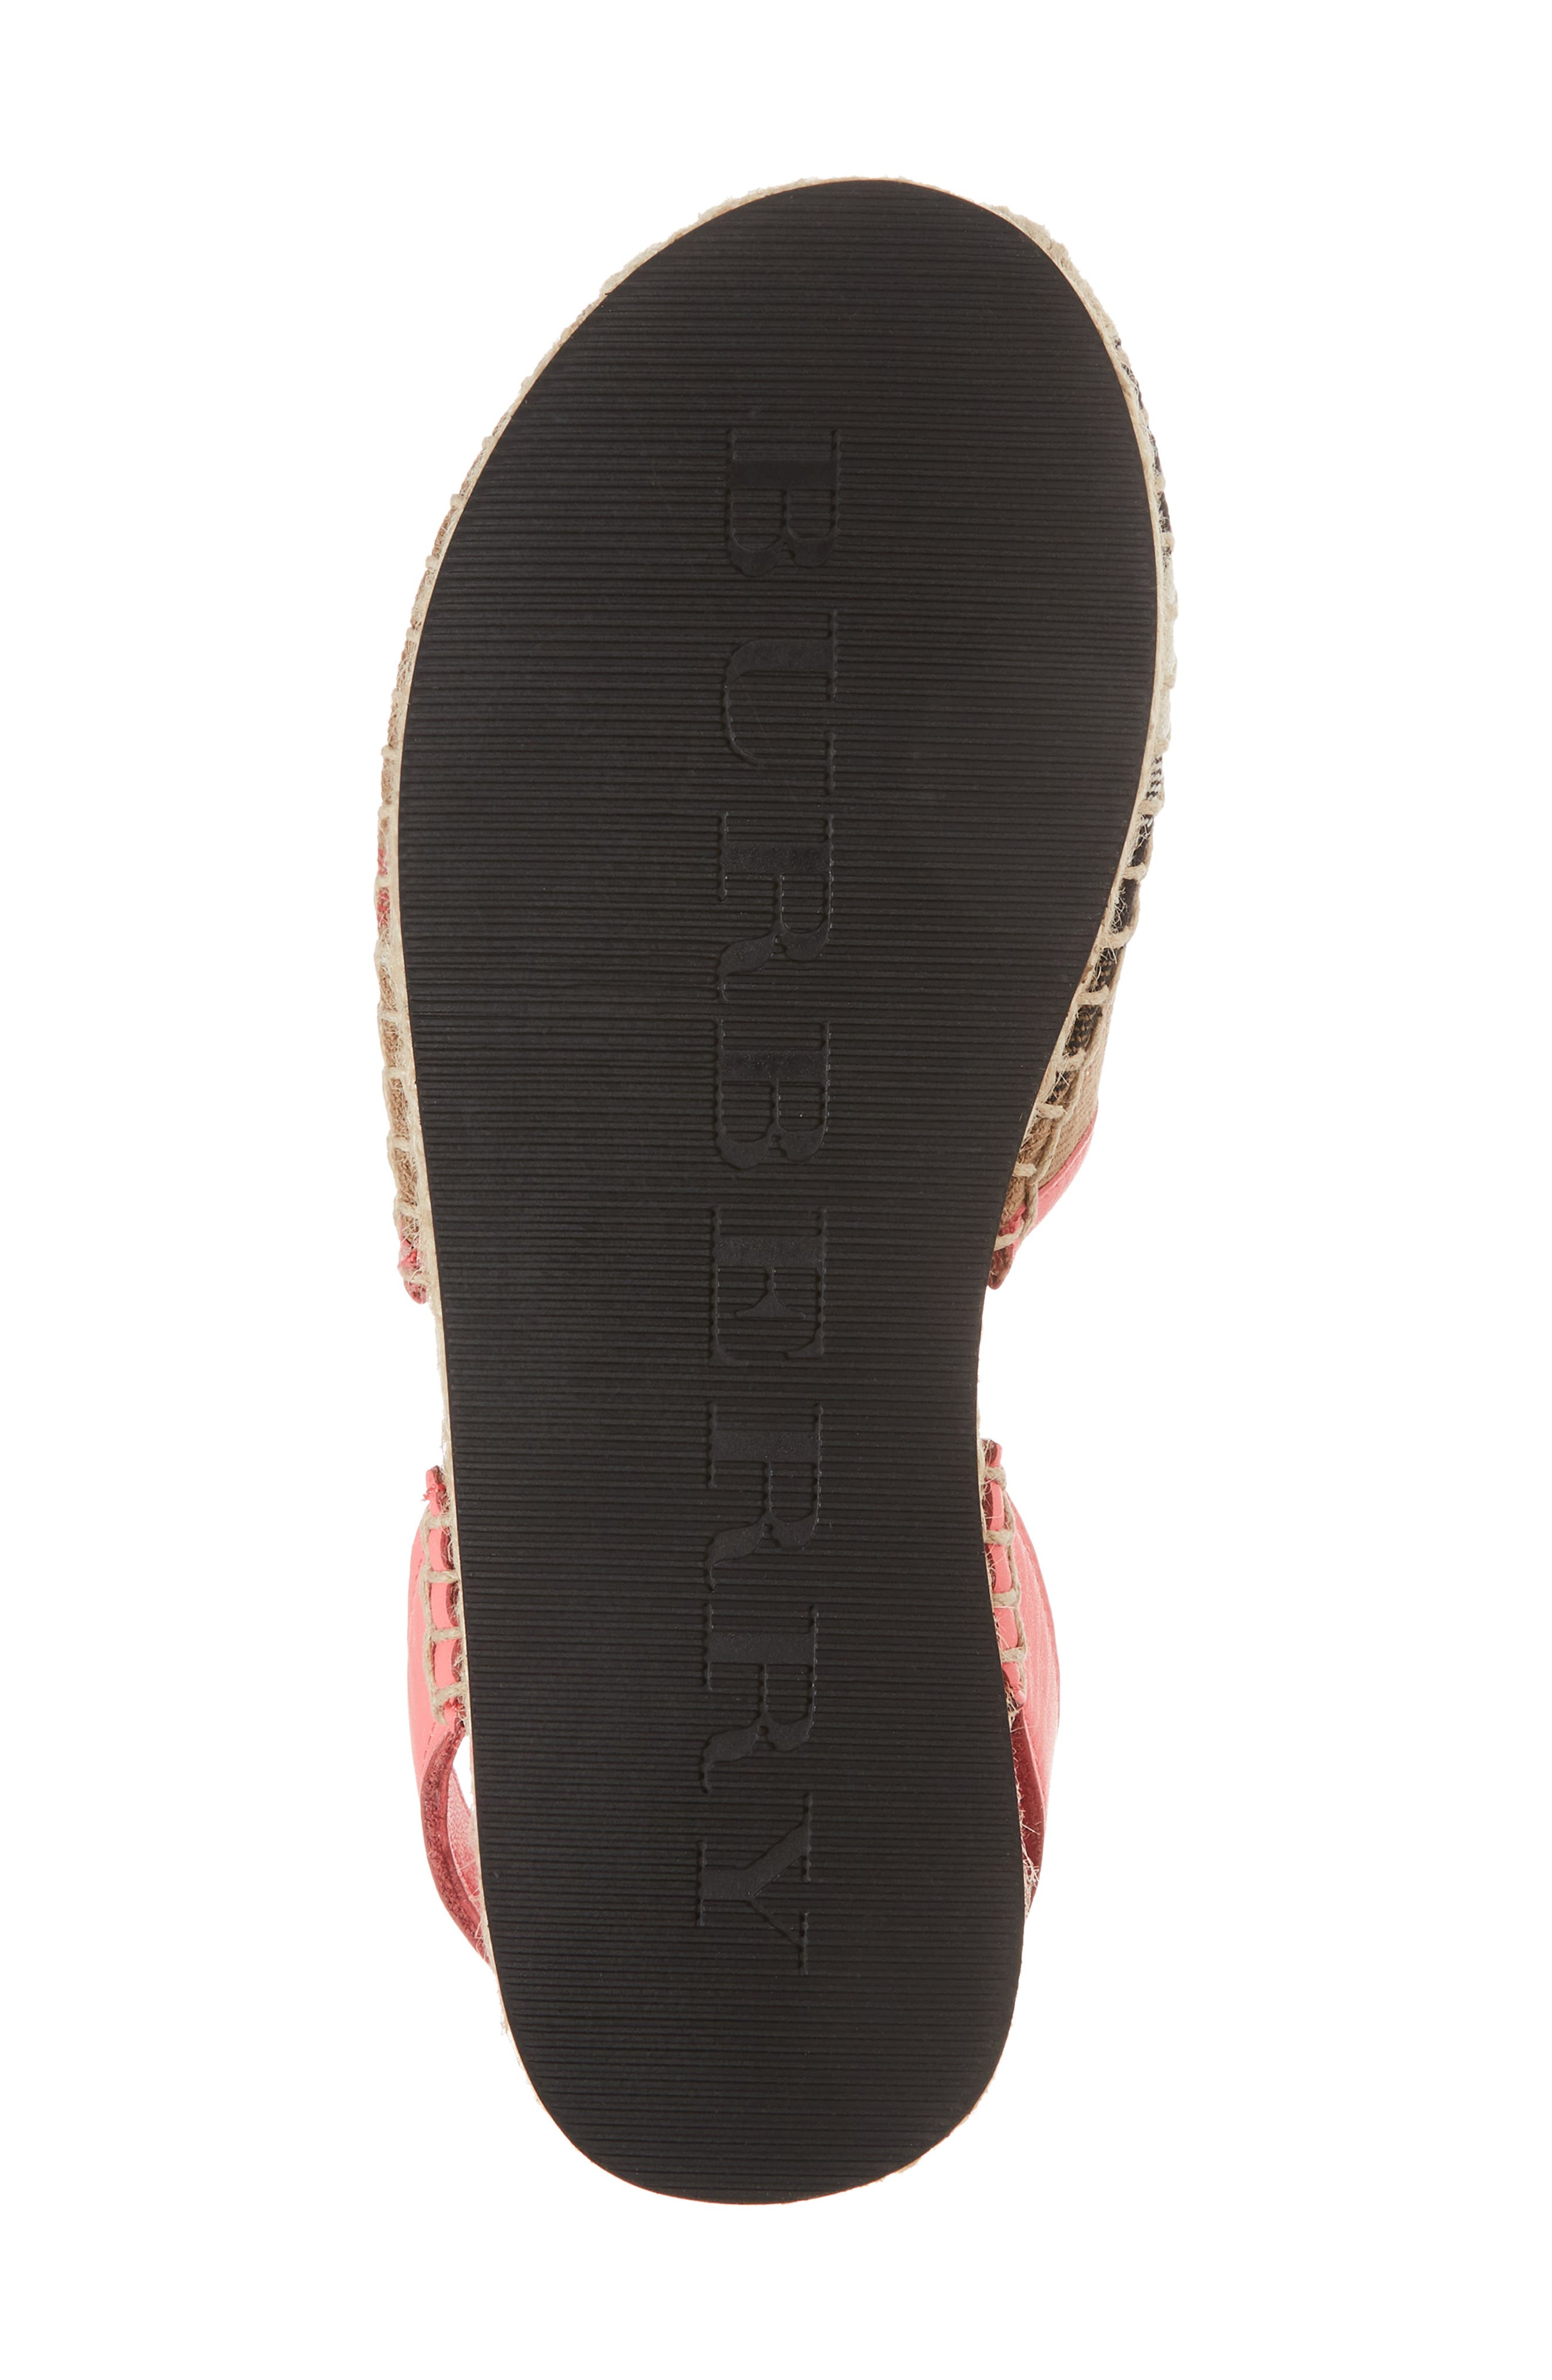 New Perth Espadrille Sandal,                             Alternate thumbnail 6, color,                             676